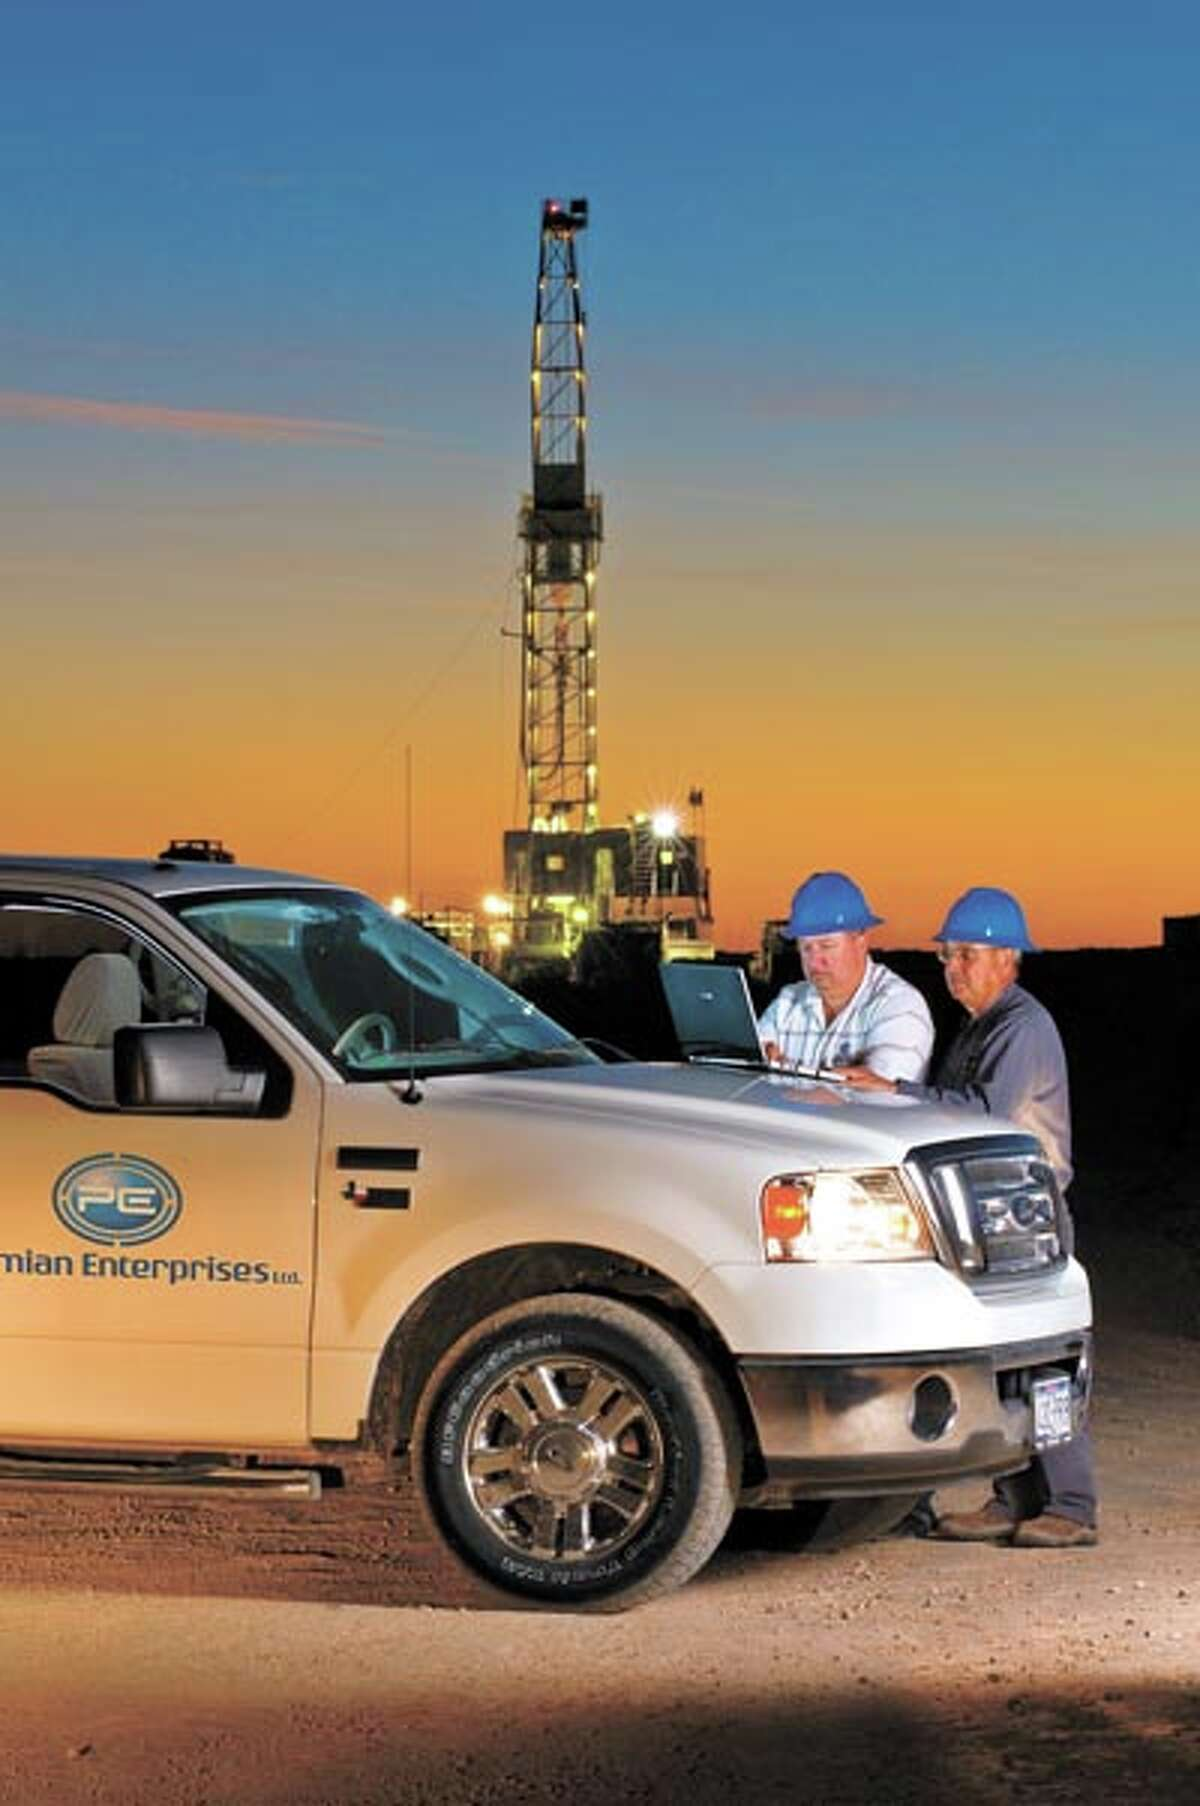 Permian Enterprises' Ryt Wrap™ is protecting downhole tubulars across the Permian Basin and in other areas. More than 30 million feet of pipe coated this way are in service. Call 432-332-0903 to learn more about how Ryt-Wrap can keep your pipe in service for years and years.